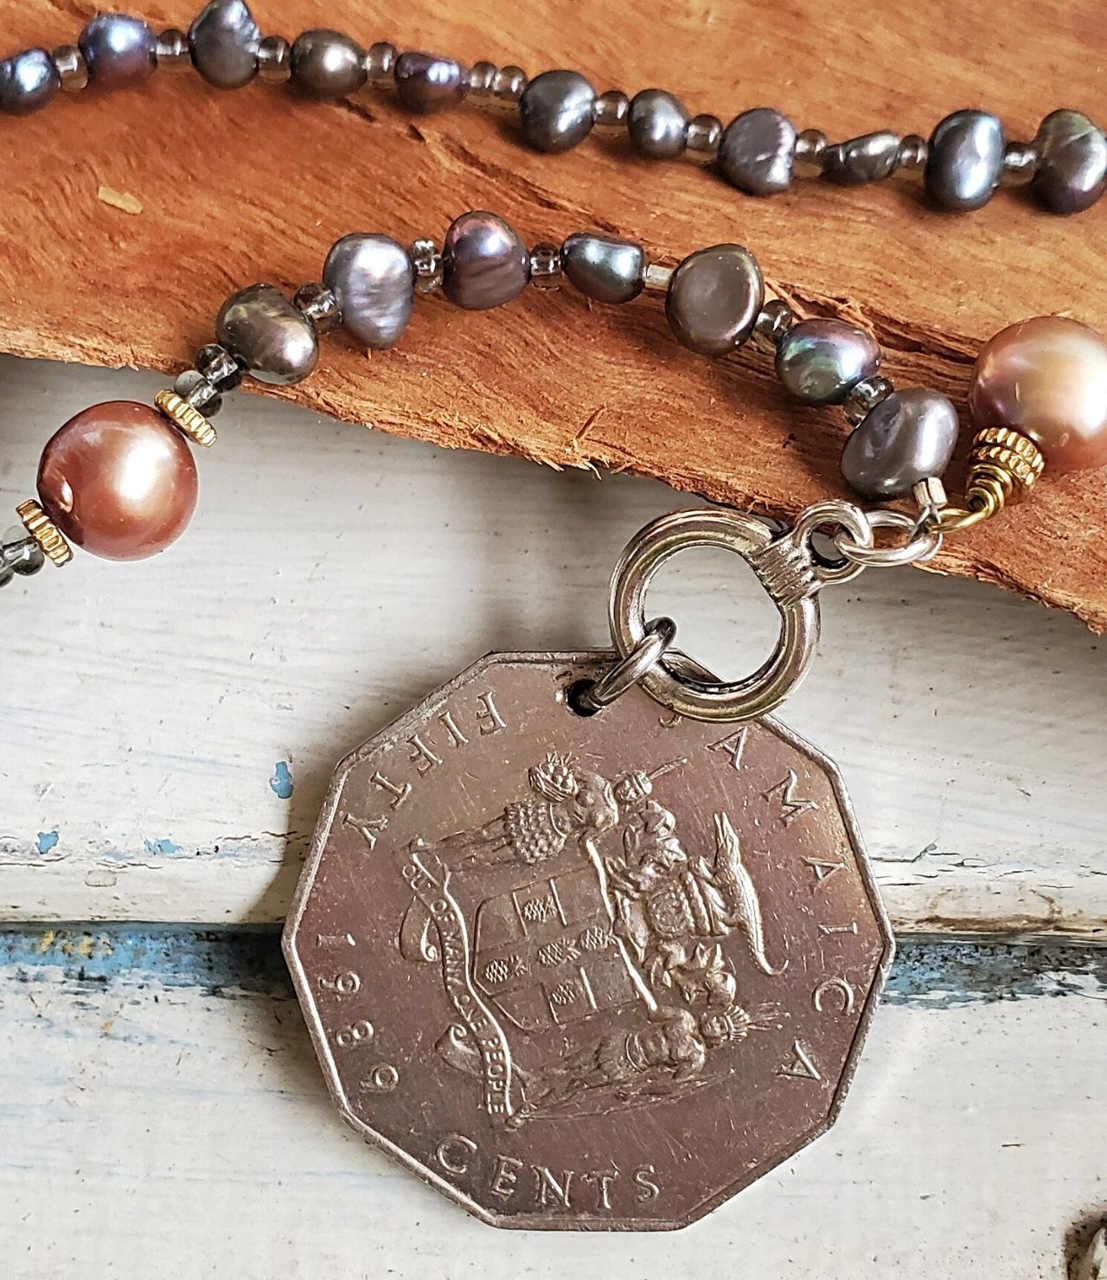 Silver Jamaica coin pearl necklace on wood